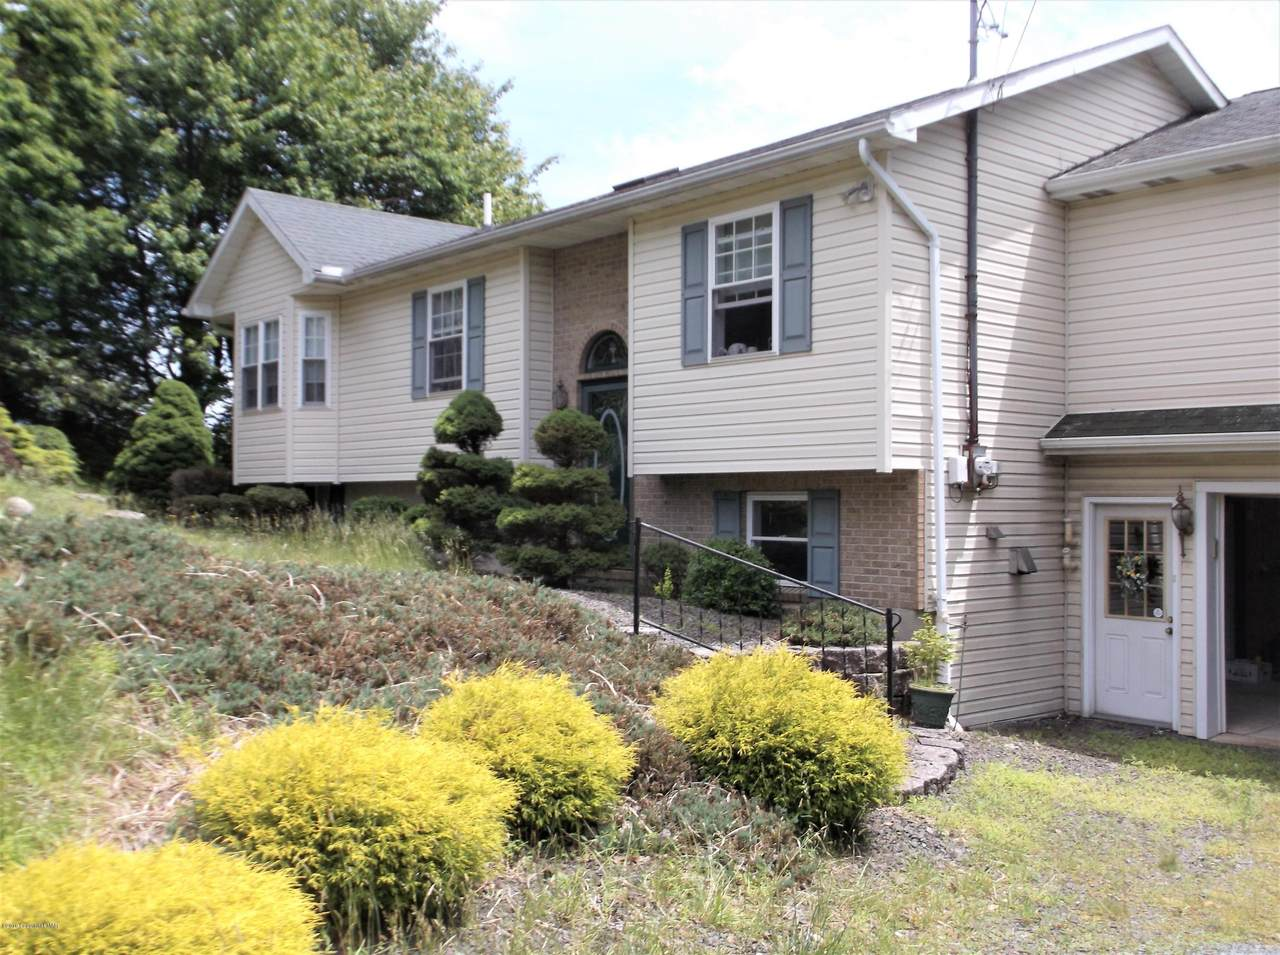 609 Clearview Dr - Photo 1